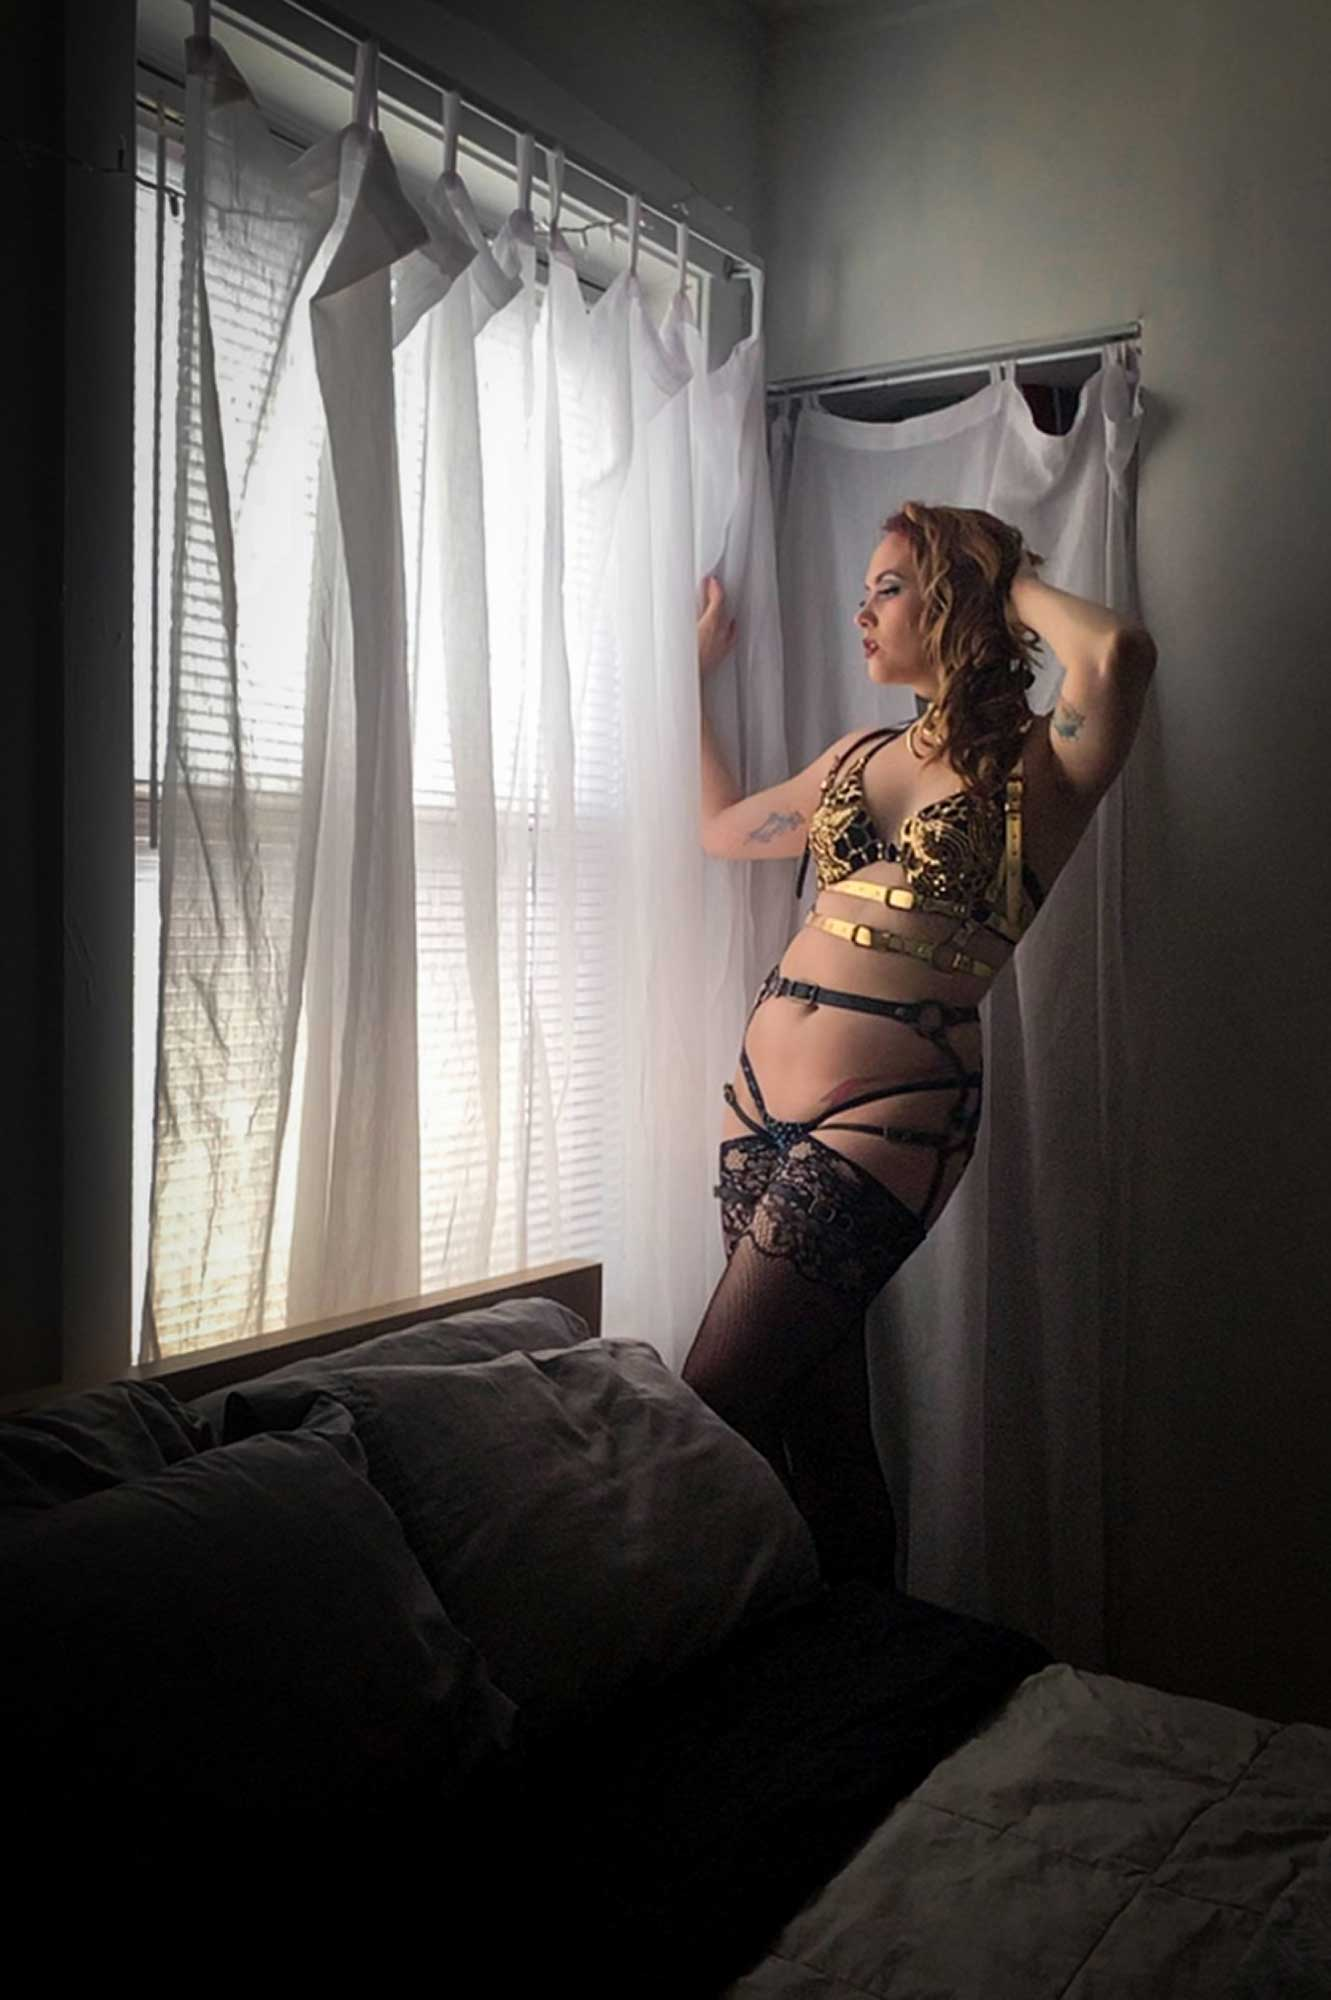 Penny Heartbleed's Virtual Boudoir Shoot © Tigz Rice Ltd 2020